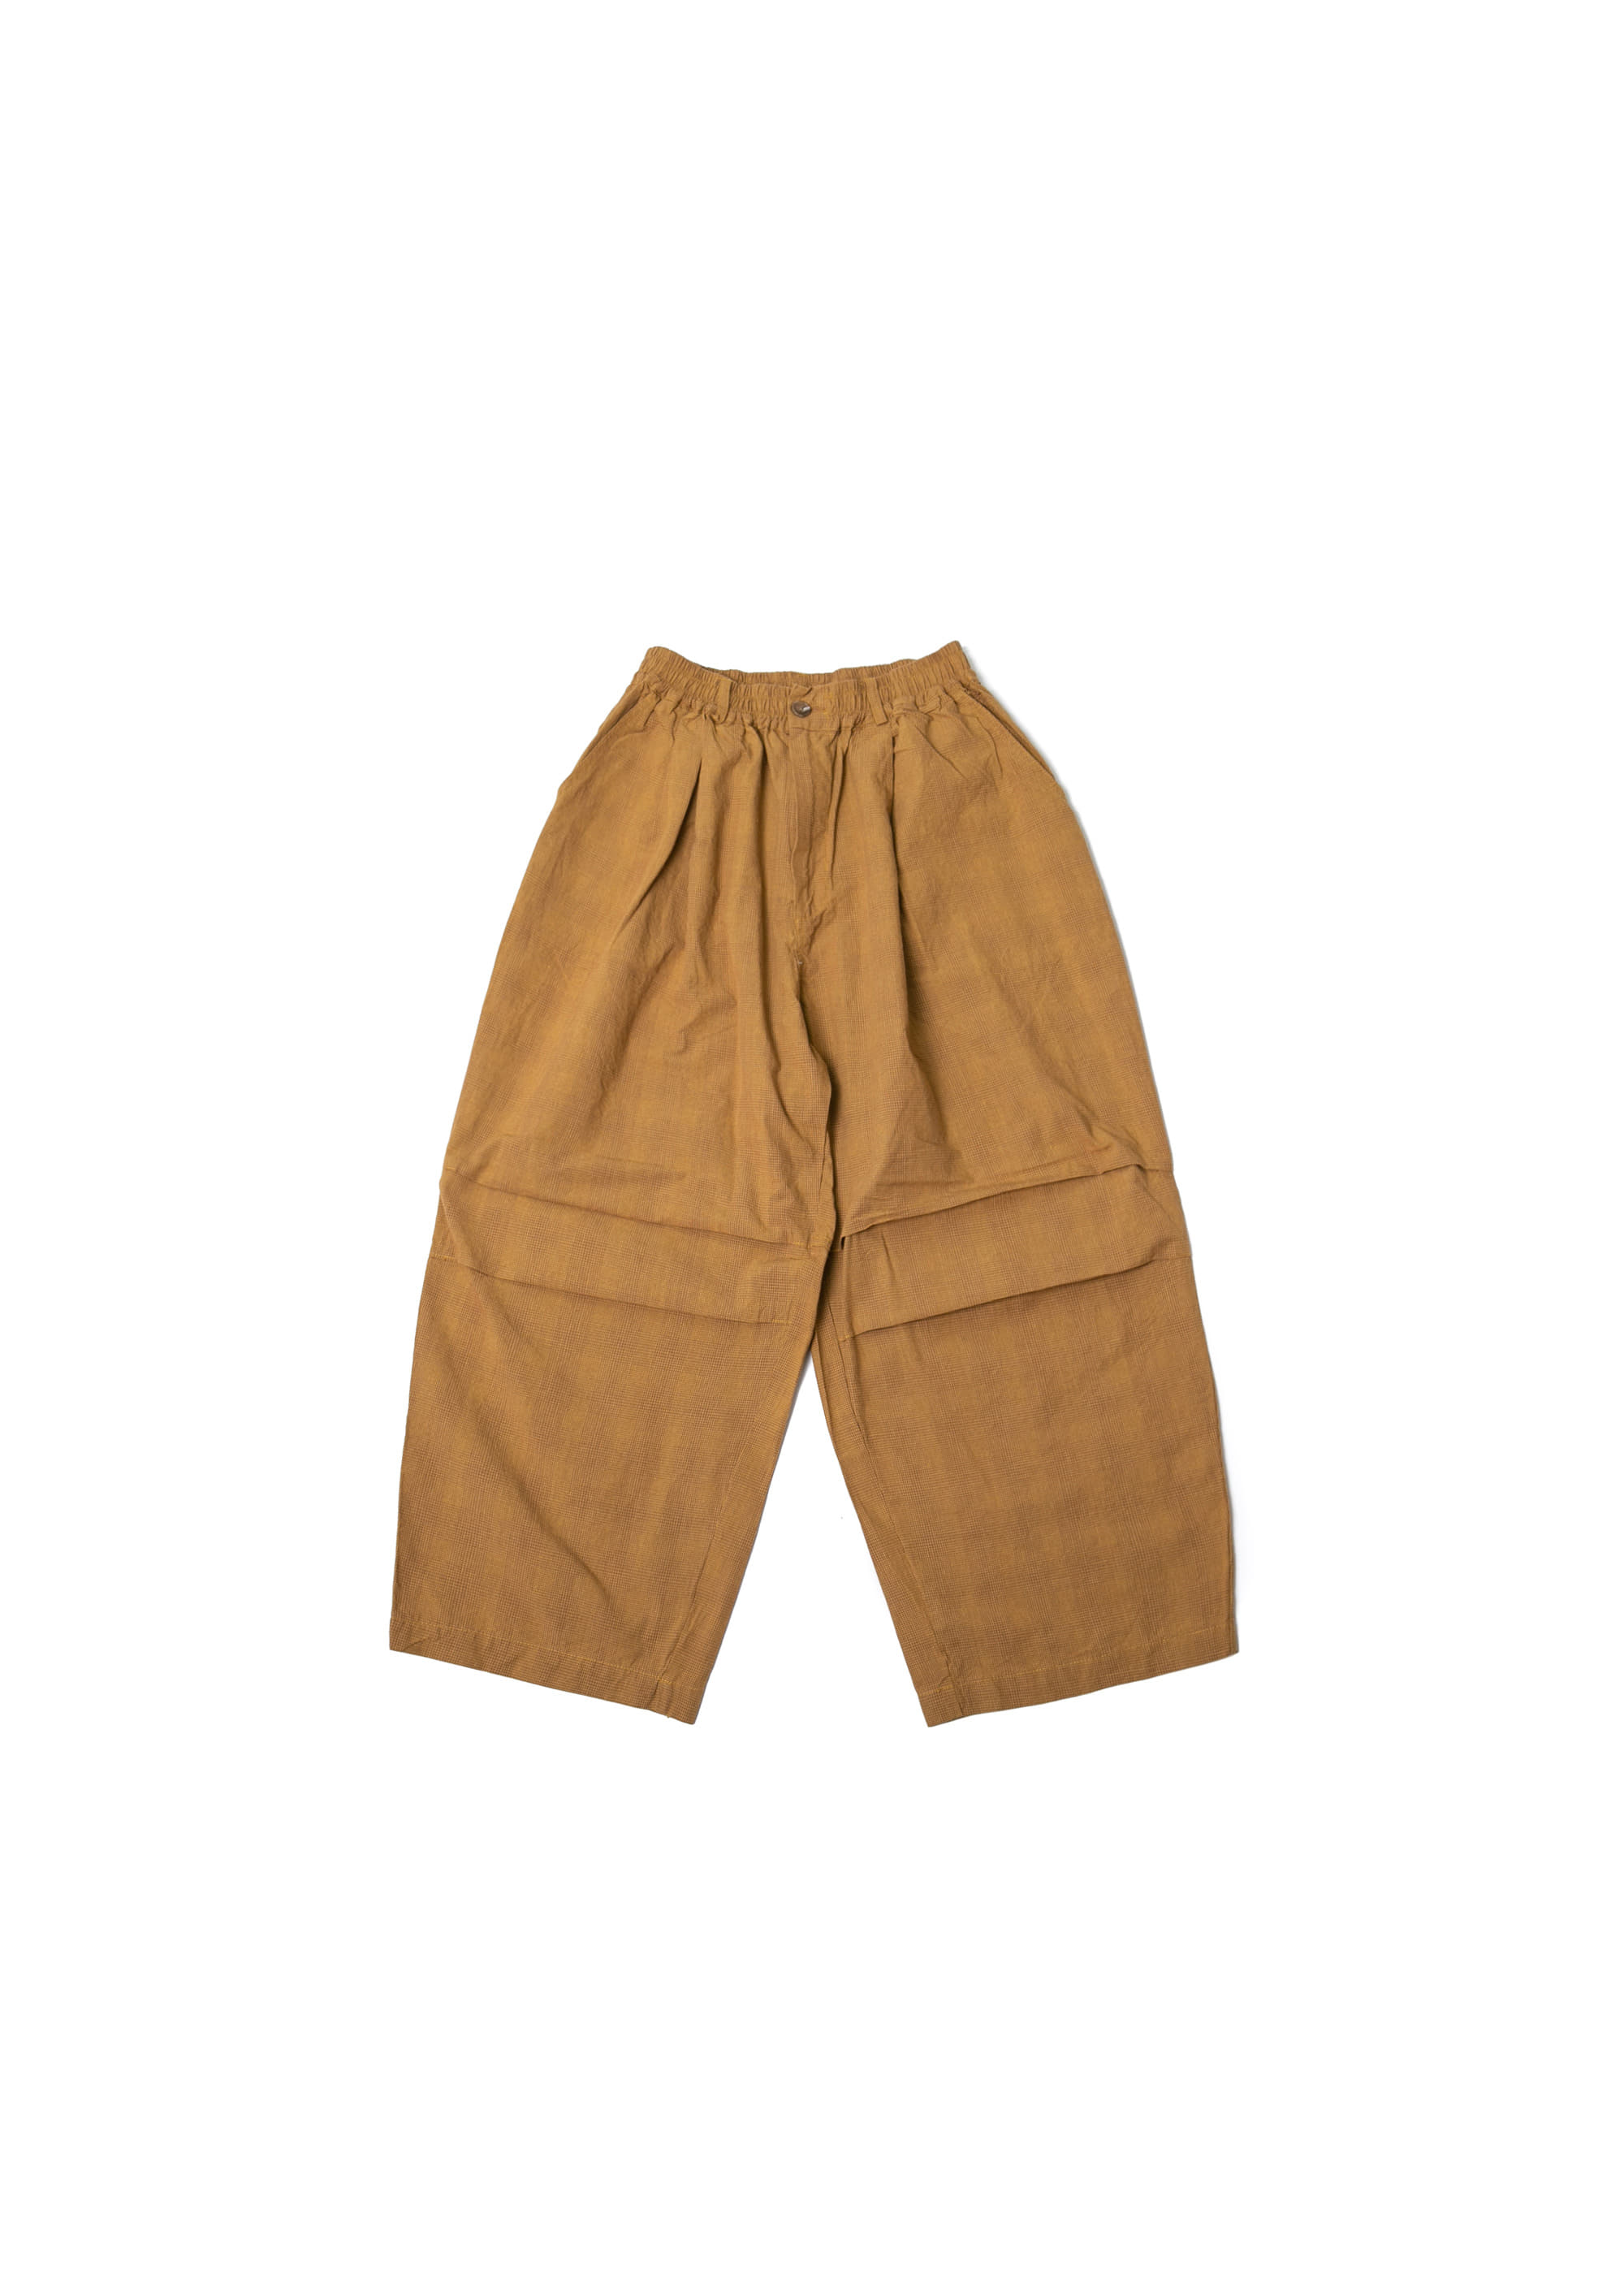 Square Check Army Balloon Pants - Mustard